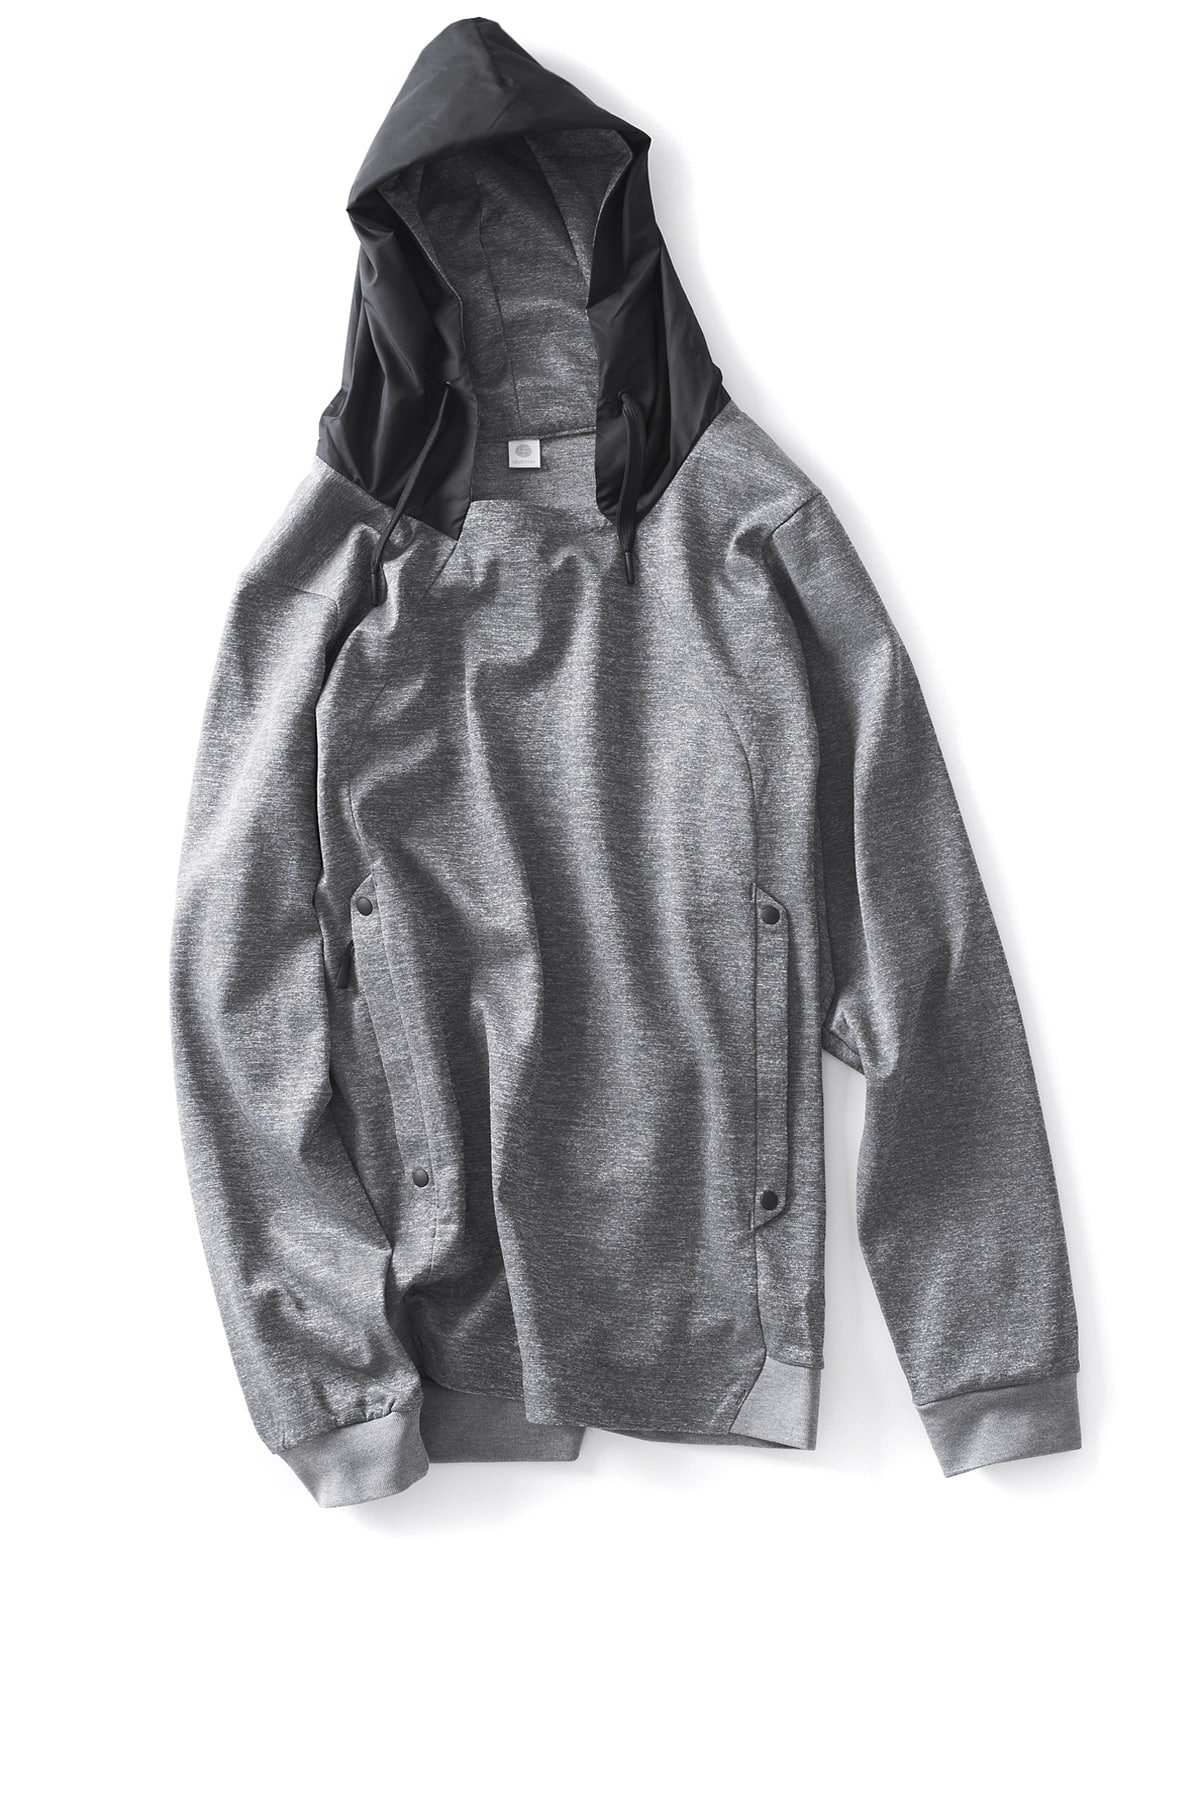 alk phenix : Tab Parka / Reflector Heather (Grey)